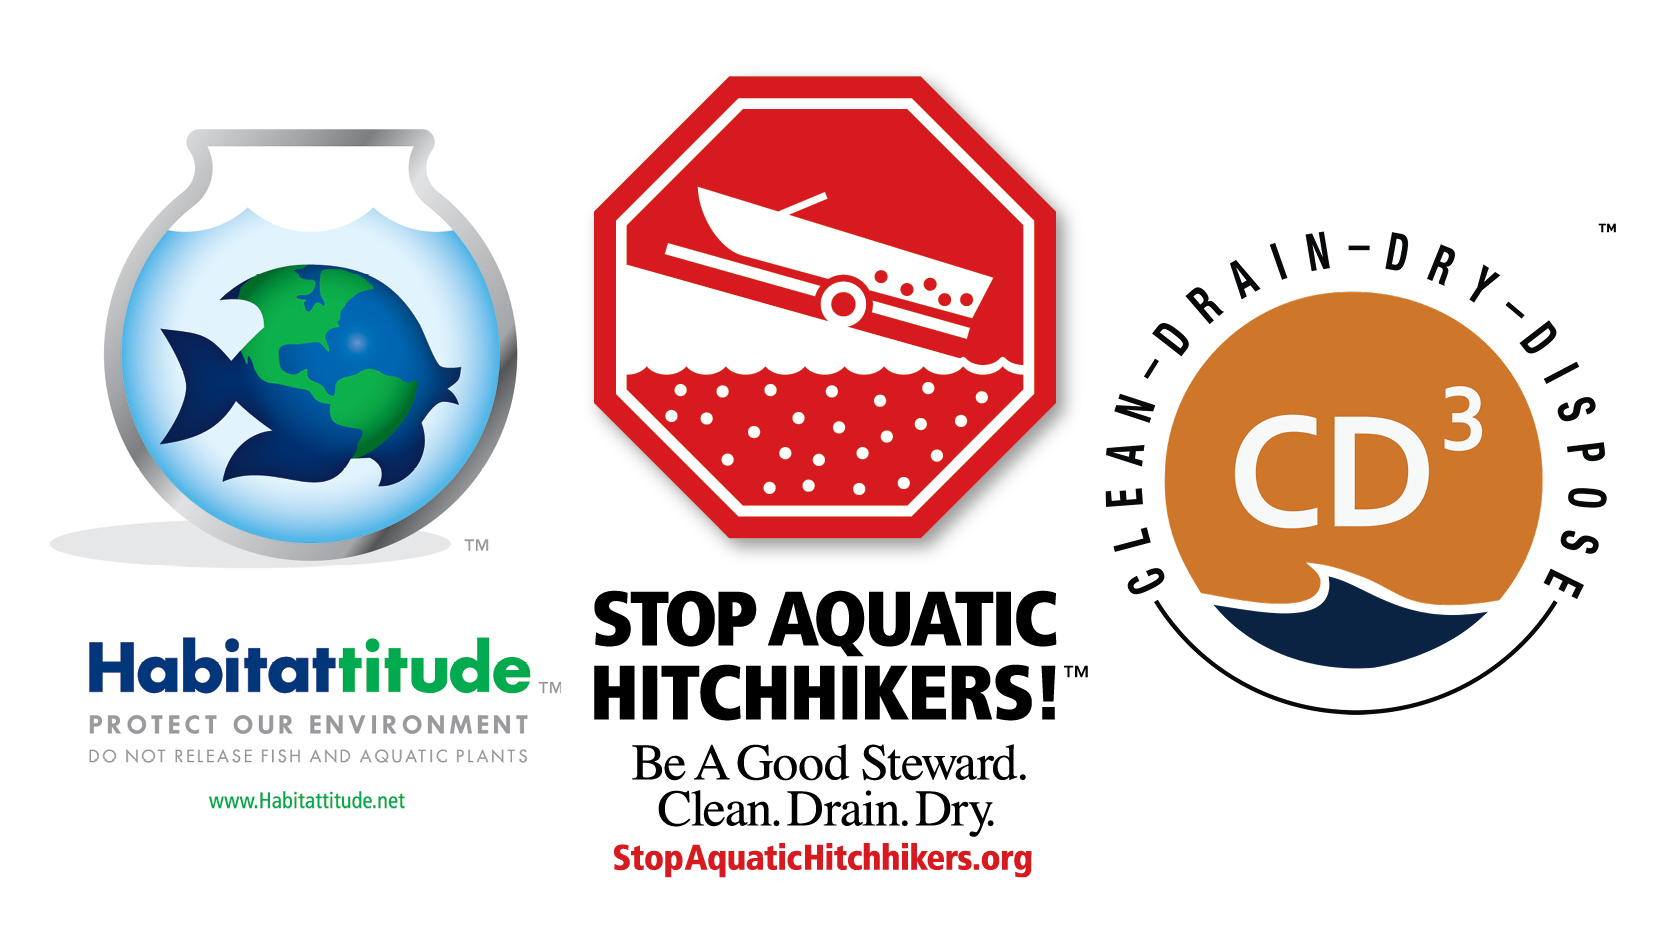 Logos of Habitattitude, Stop Aquatic Hitchhikers, and CD3